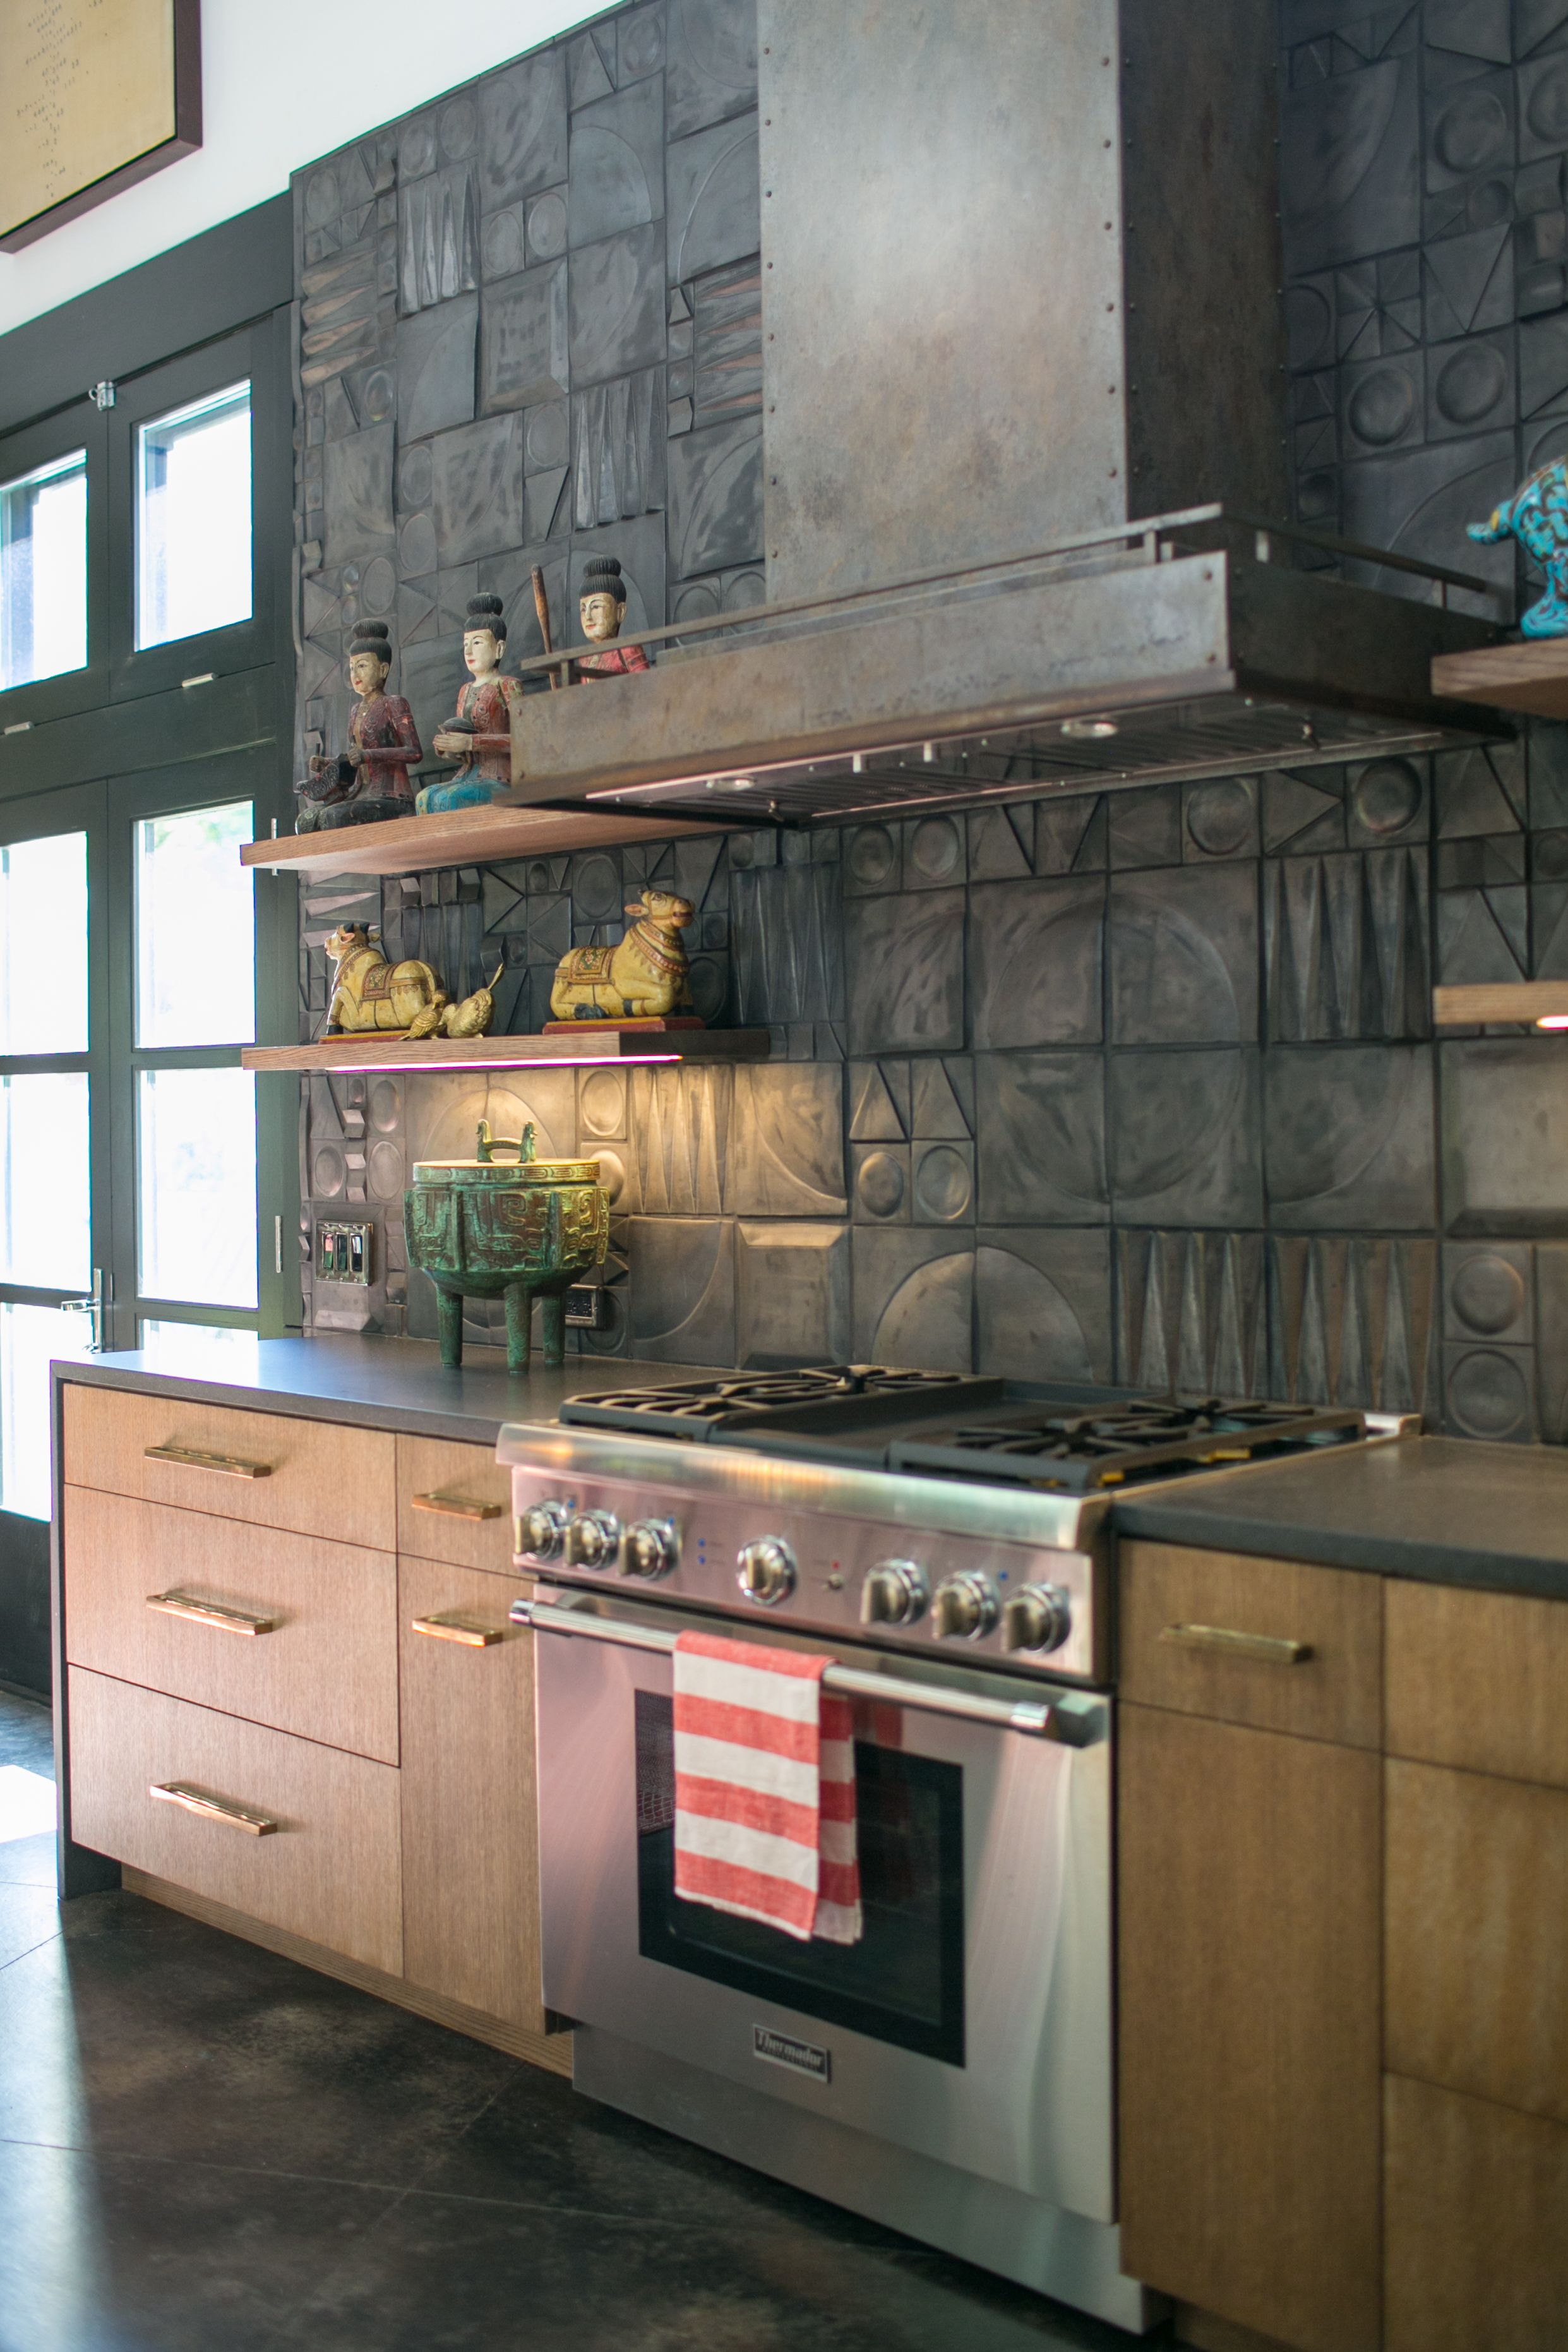 Thermador Range With Custom Handcrafted Range Hood By Raw Urth Designs Boulder Design In Agate Pati Condo Kitchen Remodel Farmhouse Kitchen Design Range Hoods